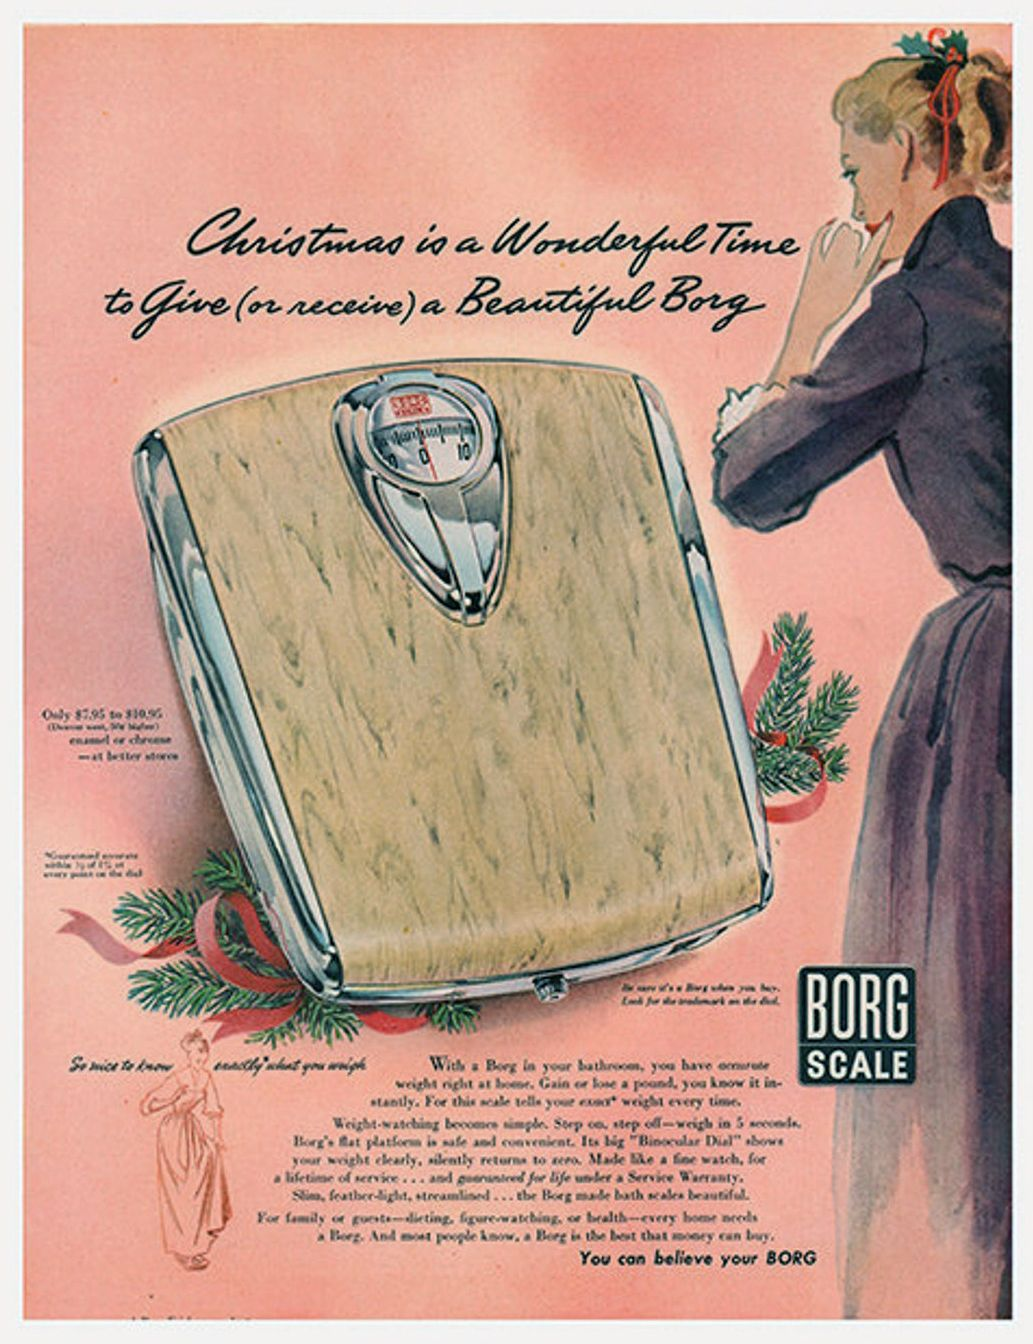 Pin By Chris G On Vintage Ads And Products Vintage Ads Vintage Advertisements Vintage